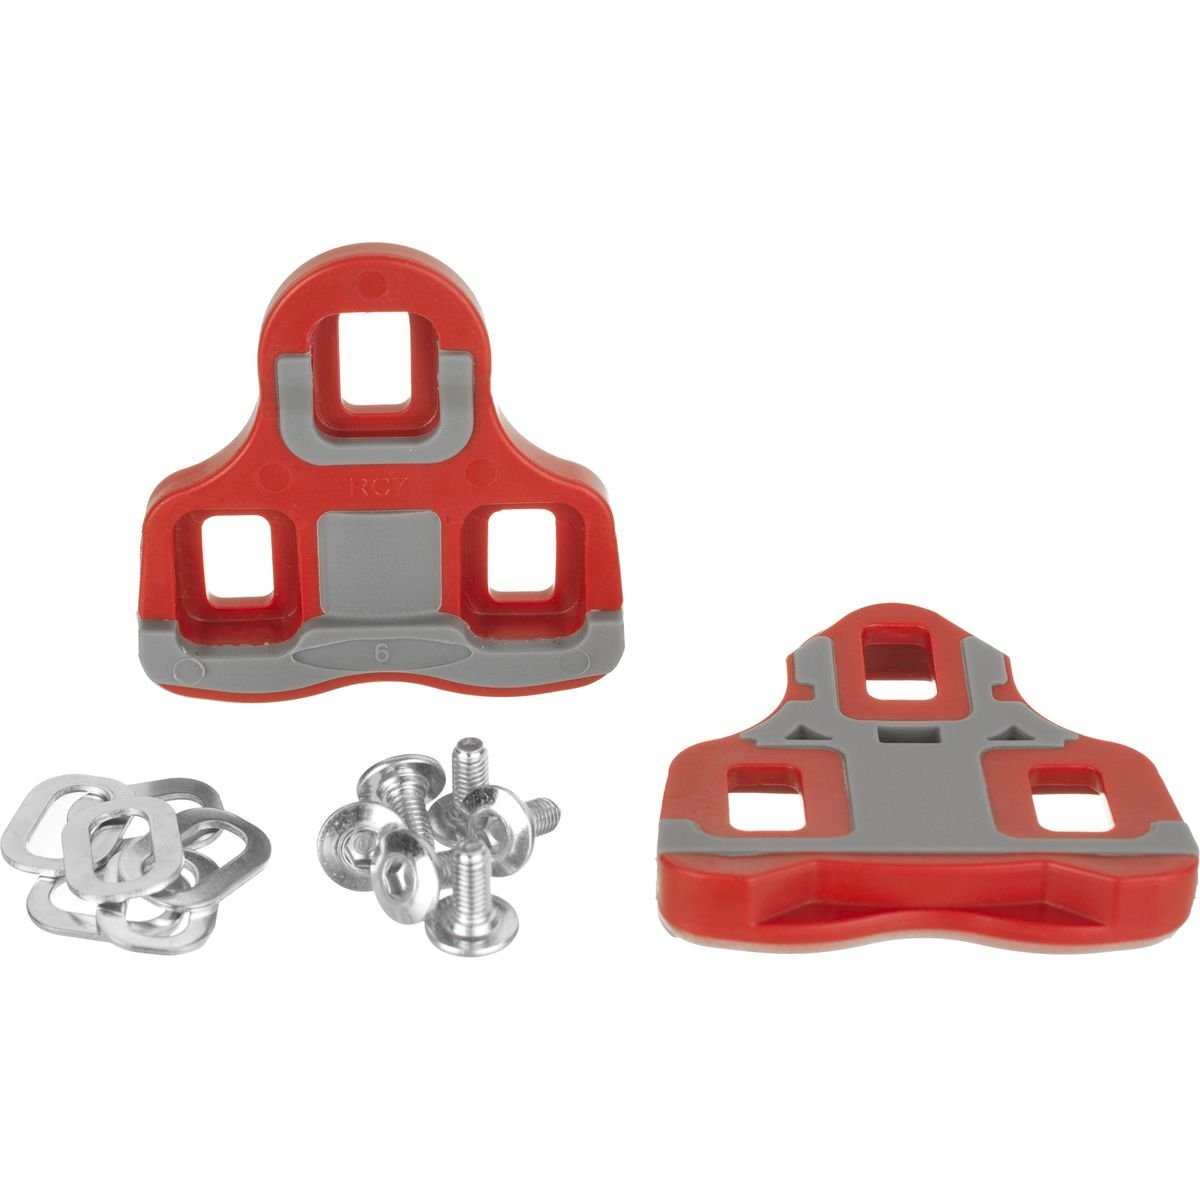 9eff6c82eb Cheap Umbro Cleats, find Umbro Cleats deals on line at Alibaba.com